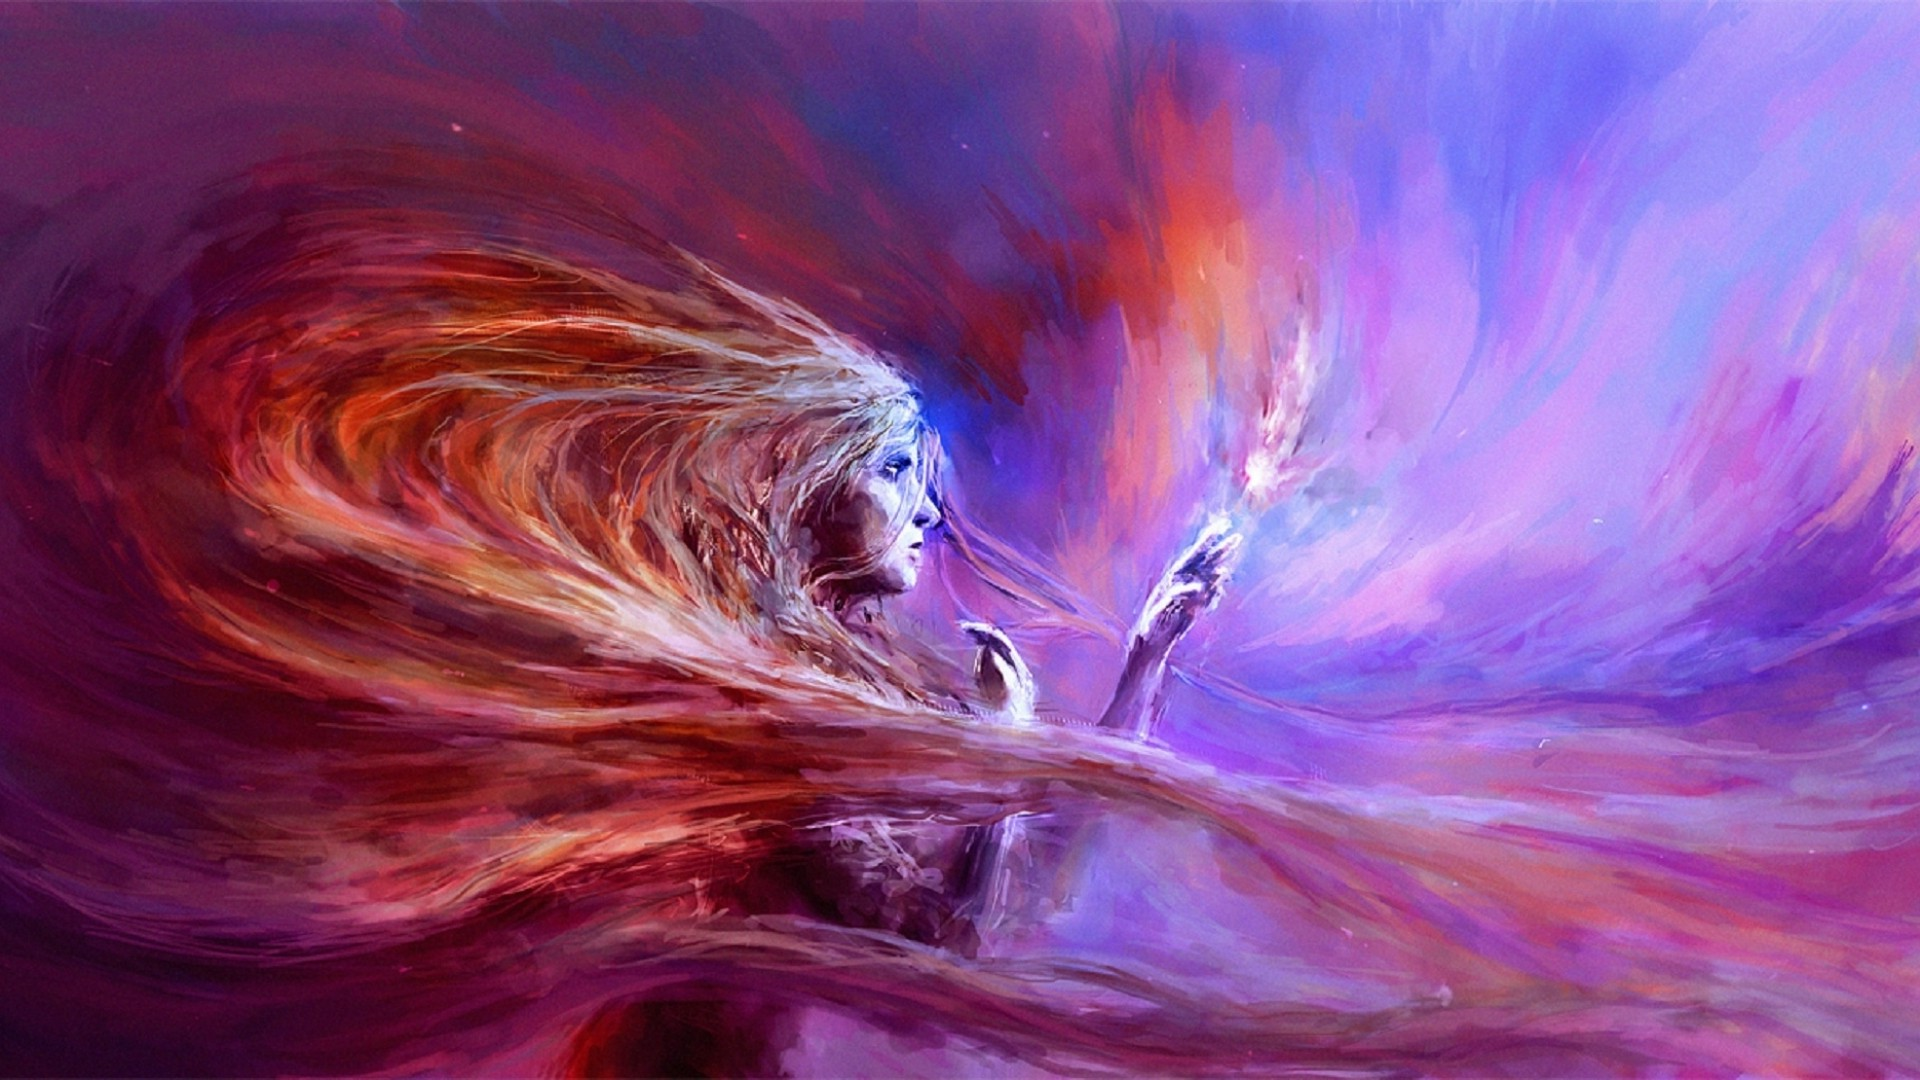 artwork, fantasy art, women, abstract, colorful wallpapers hd